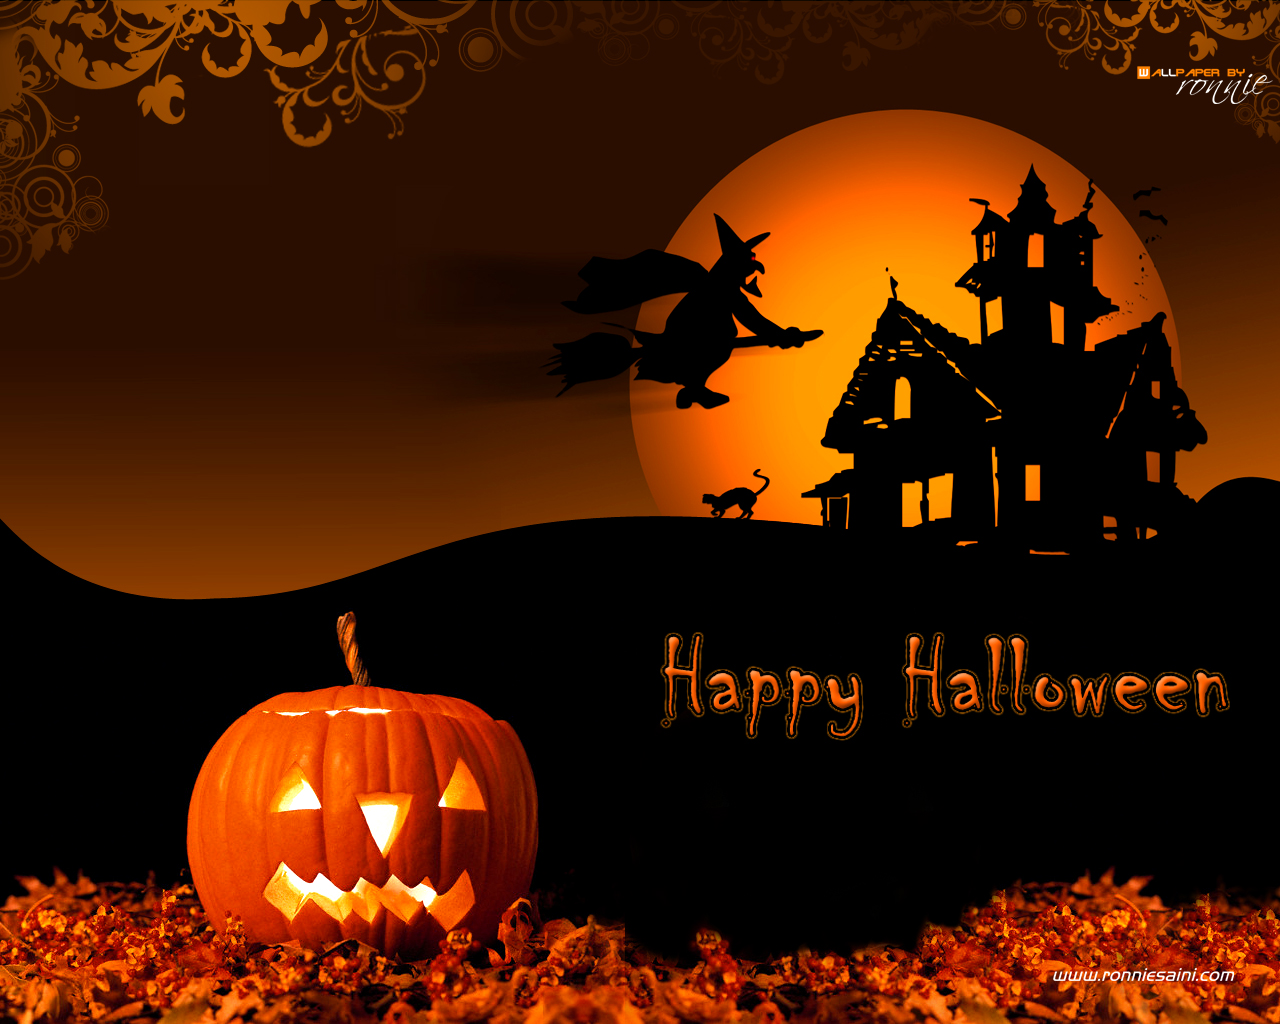 Halloween 3D wallpapers Halloween 3D background 1280x1024